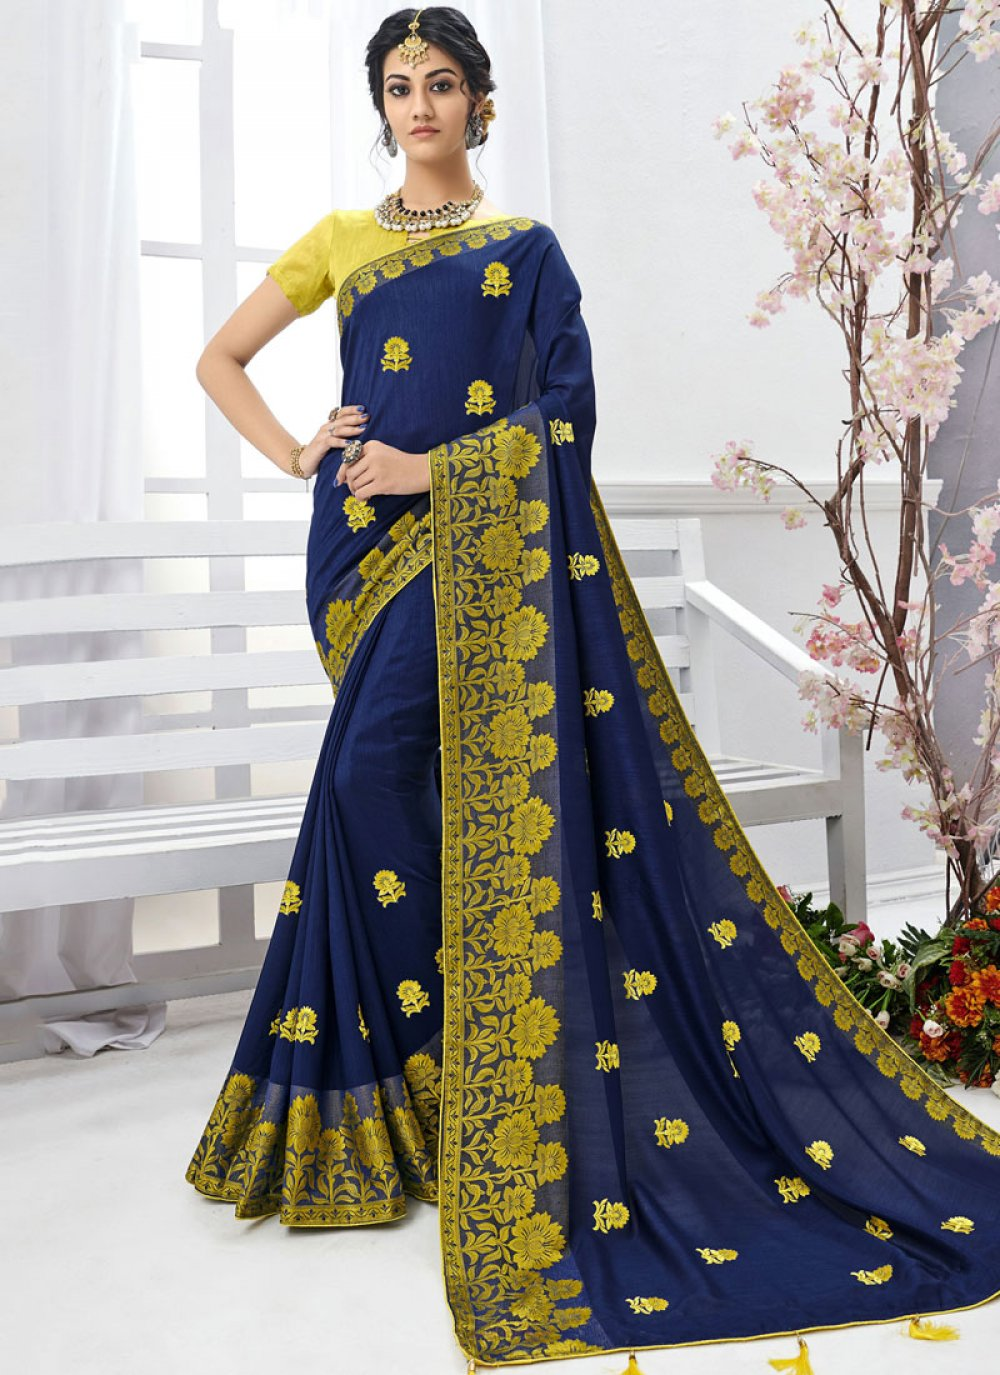 Faux Chiffon Embroidered Designer Saree in Navy Blue